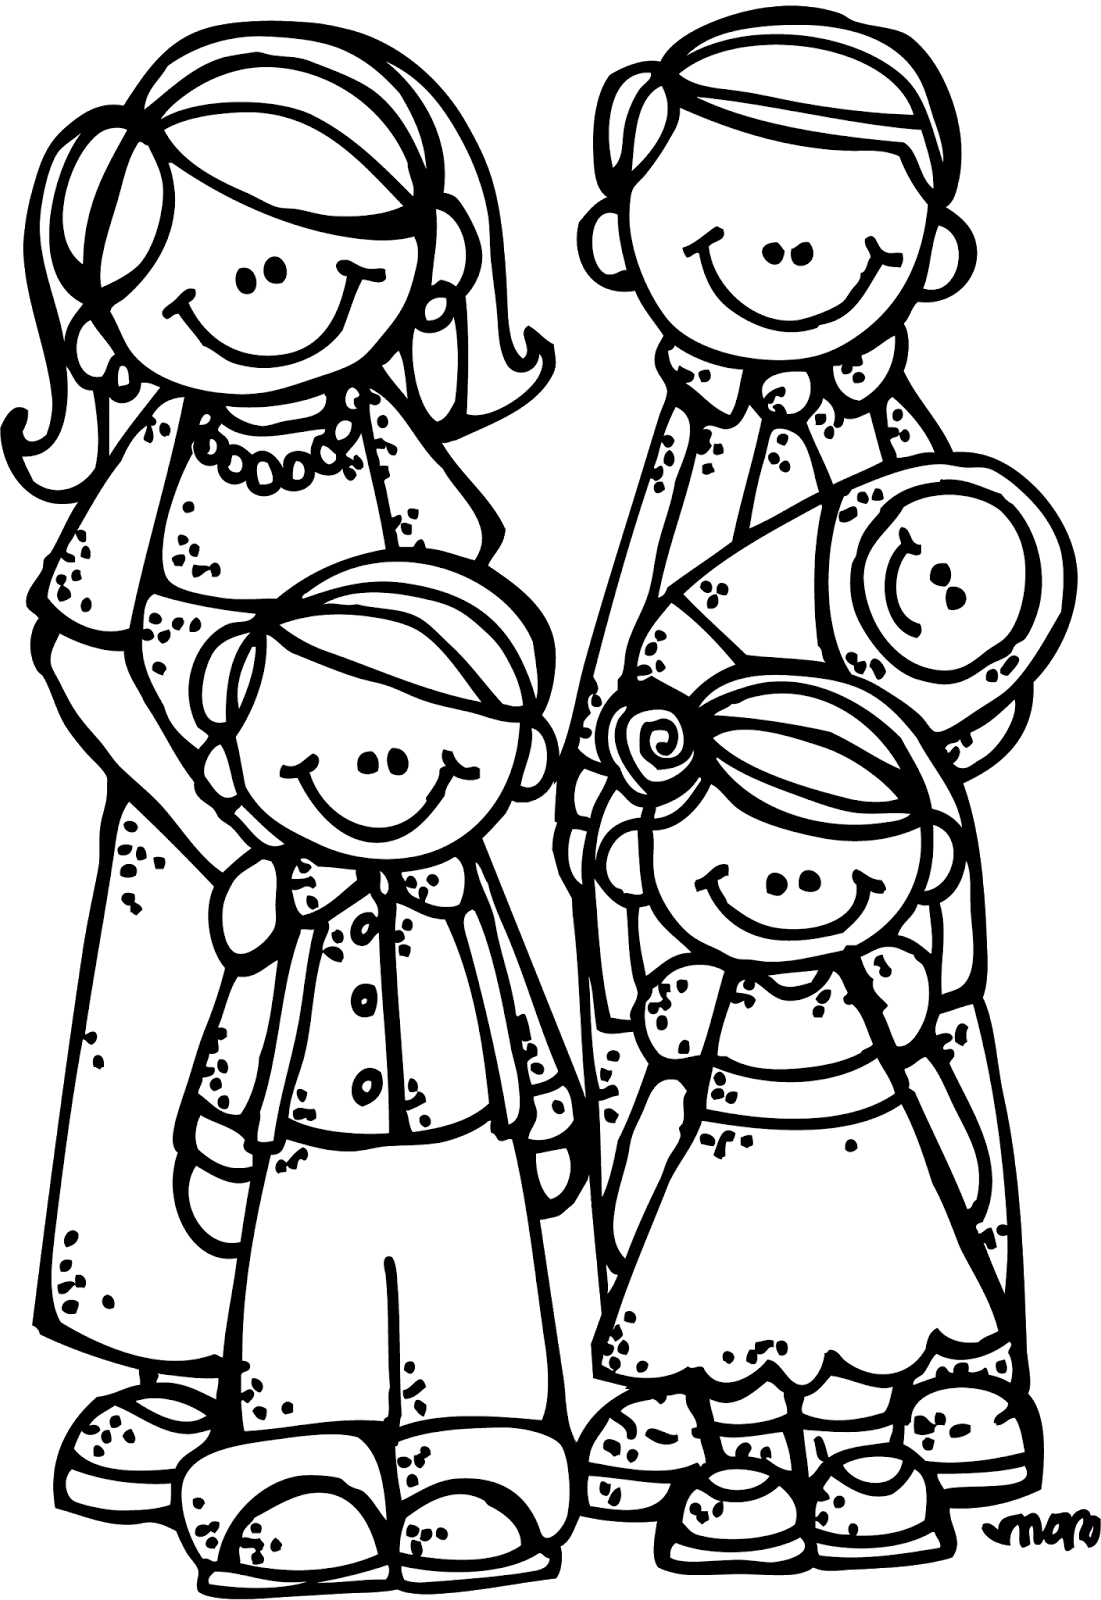 Family png hd transparent. Lds clipart service